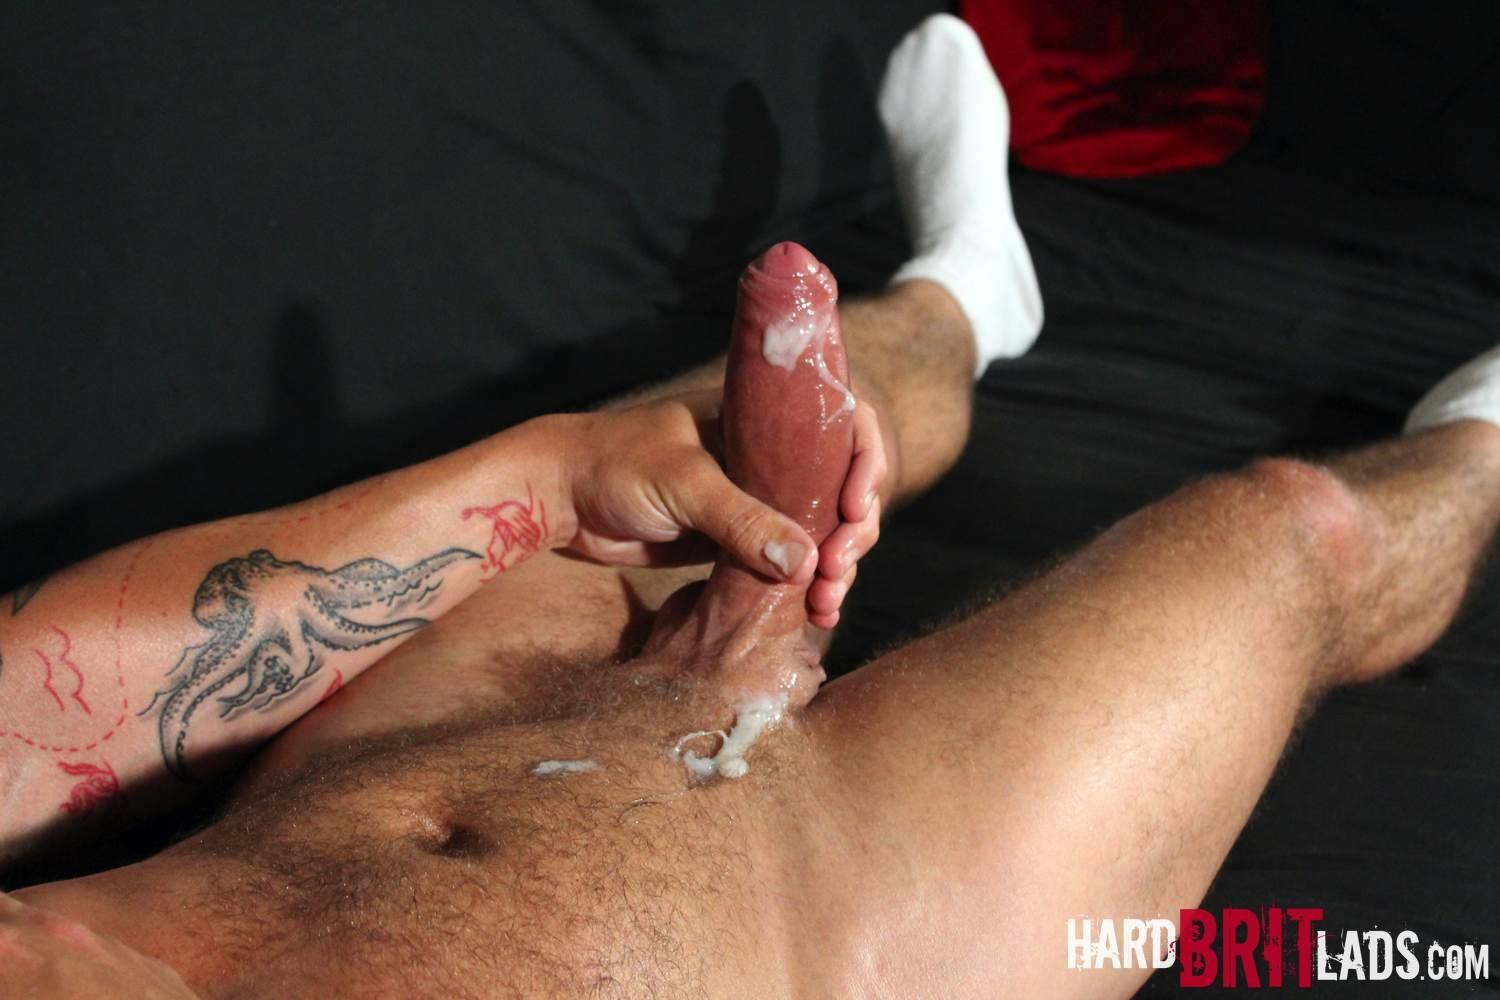 Hard Brit Lads Sam Porter British Muscle Hunk With A big Uncut cock Amateur Gay Porn 24 Tatted Muscle British Hunk Sam Porter Jerking His Big Uncut Cock